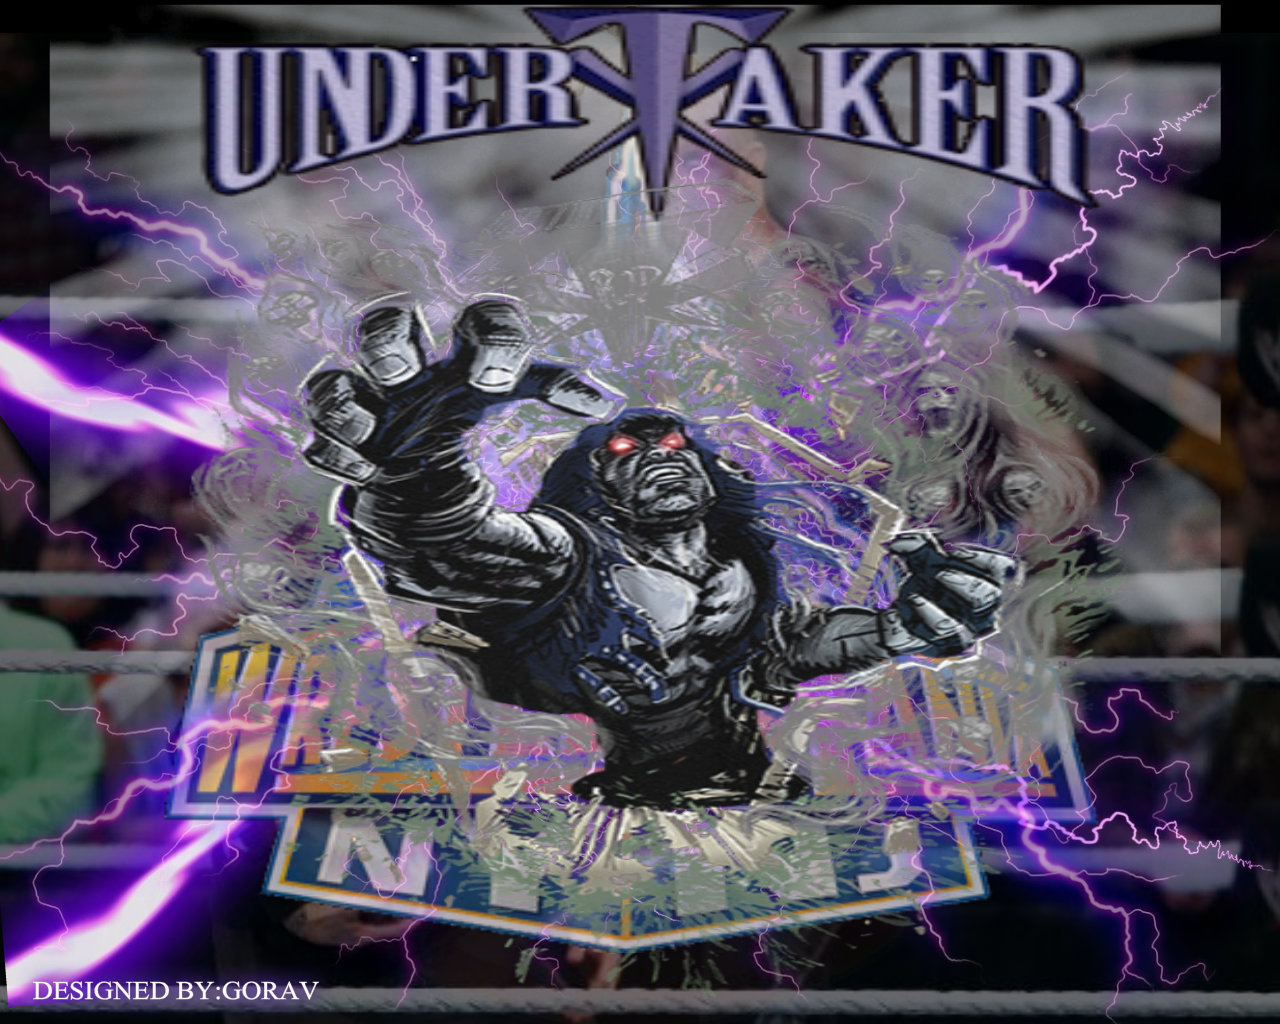 WWE Wallpaper Images THE UNDERTAKER WALLPAPER 2013 HD And Background Photos